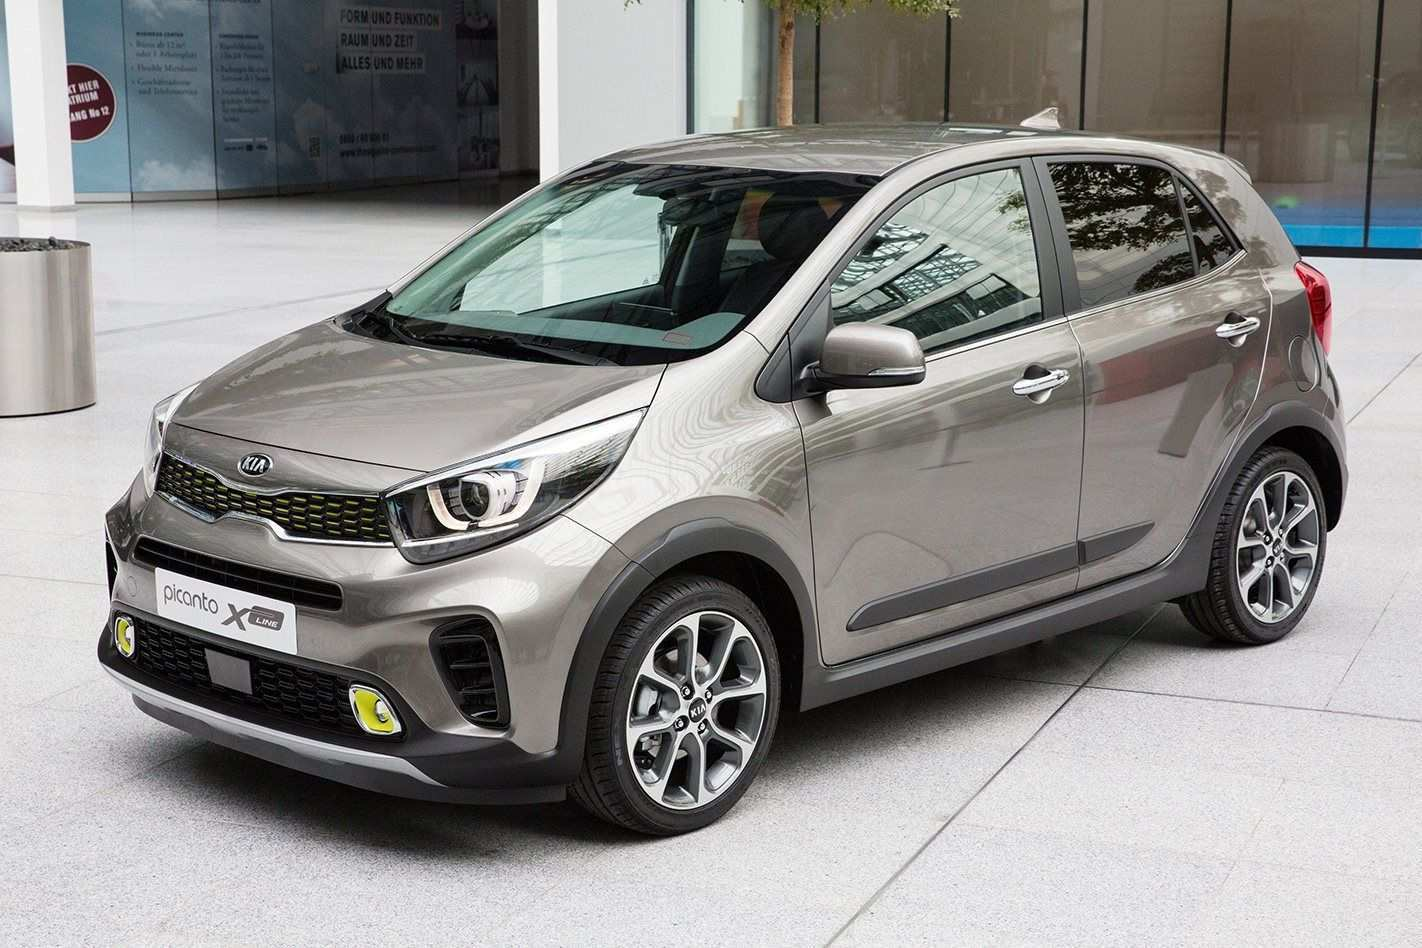 64 Great Kia Picanto 2019 Xline Performance and New Engine for Kia Picanto 2019 Xline